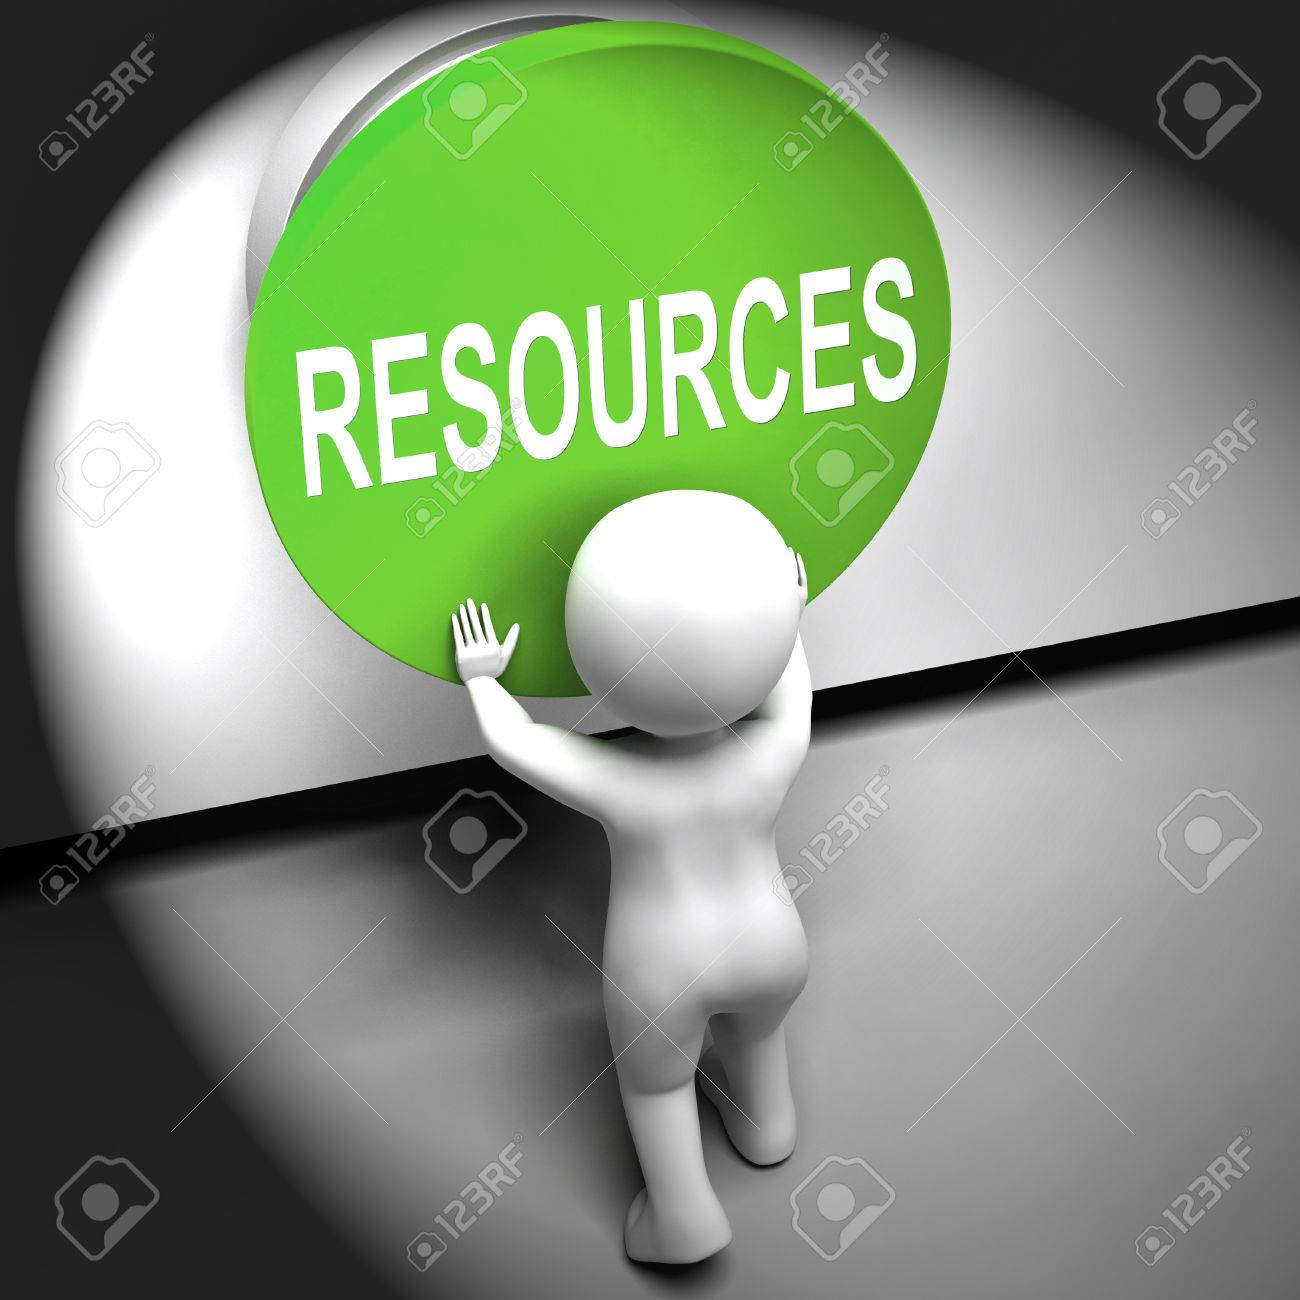 Resources Pressed Meaning Funds Capital Or Staff Stock Photo